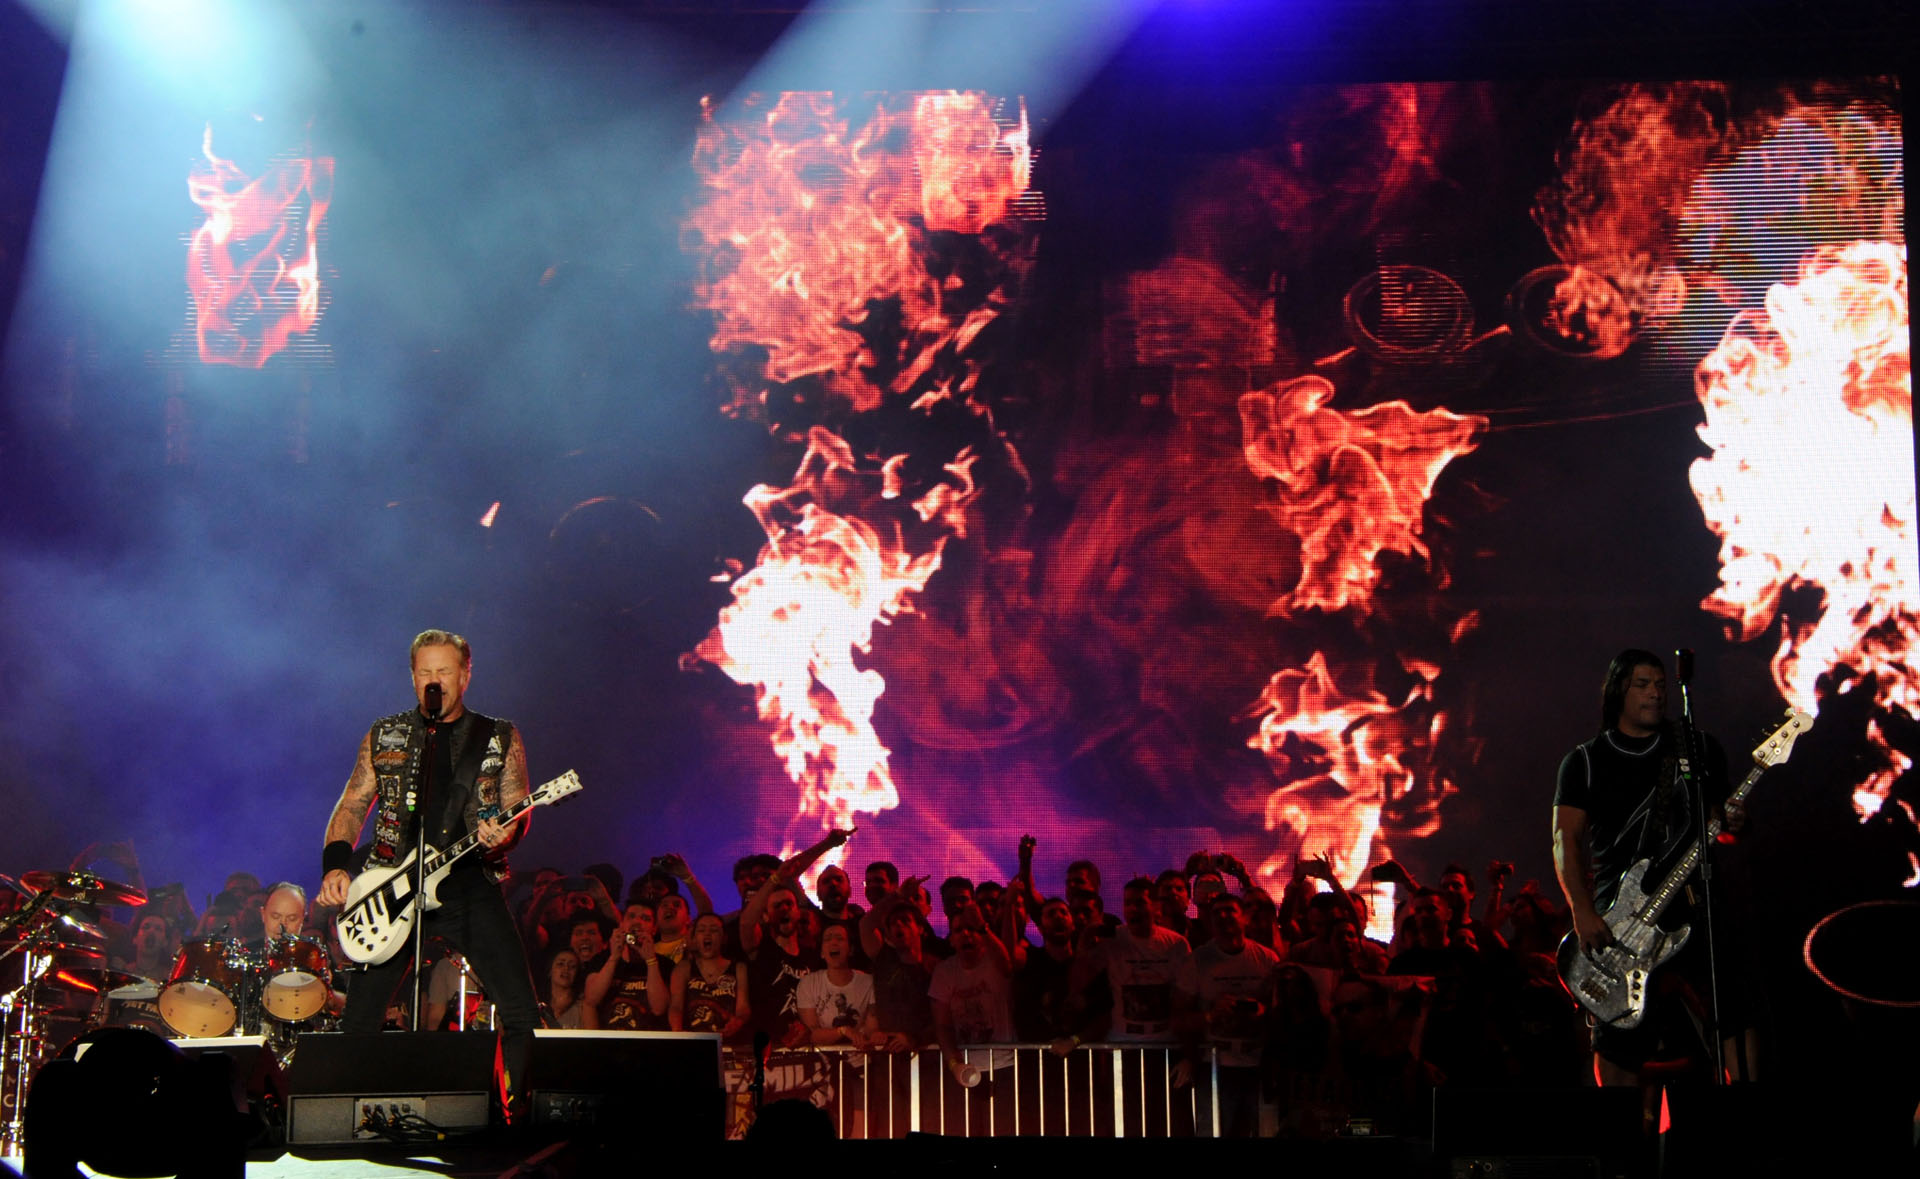 James Hetfield (L) and Robert Trujillo of Metallica perform on the second day of the Rock in Rio music festival in Rio de Janeiro, on September 19, 2015. AFP PHOTO/ TASSO MARCELO